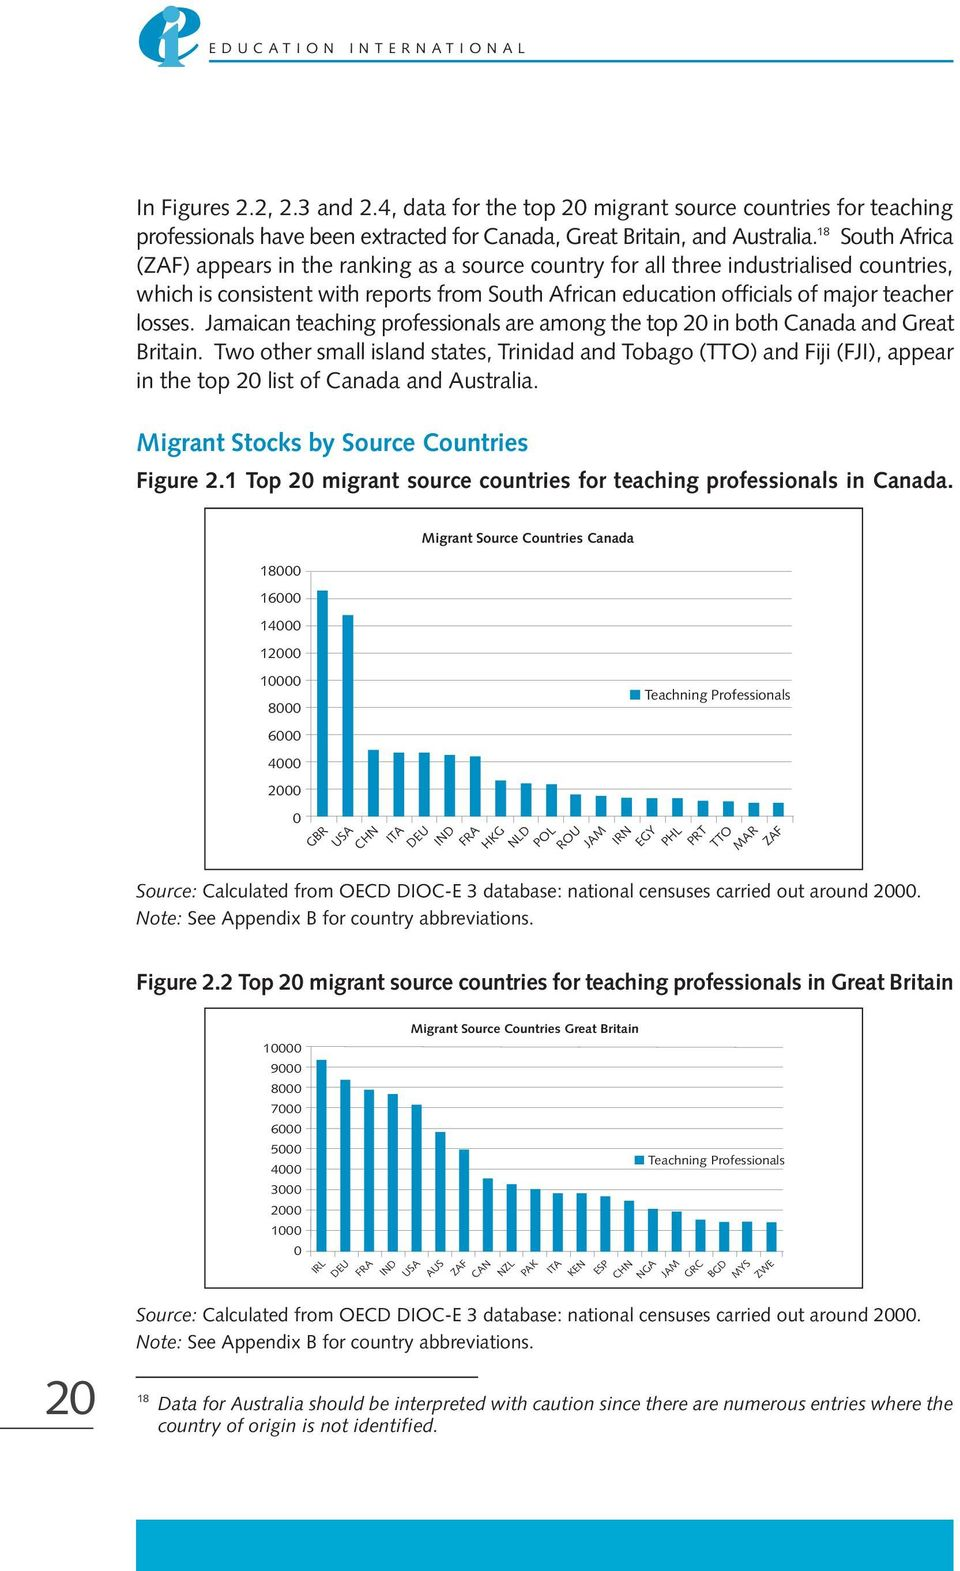 losses. Jamaican teaching professionals are among the top 20 in both Canada and Great Britain.